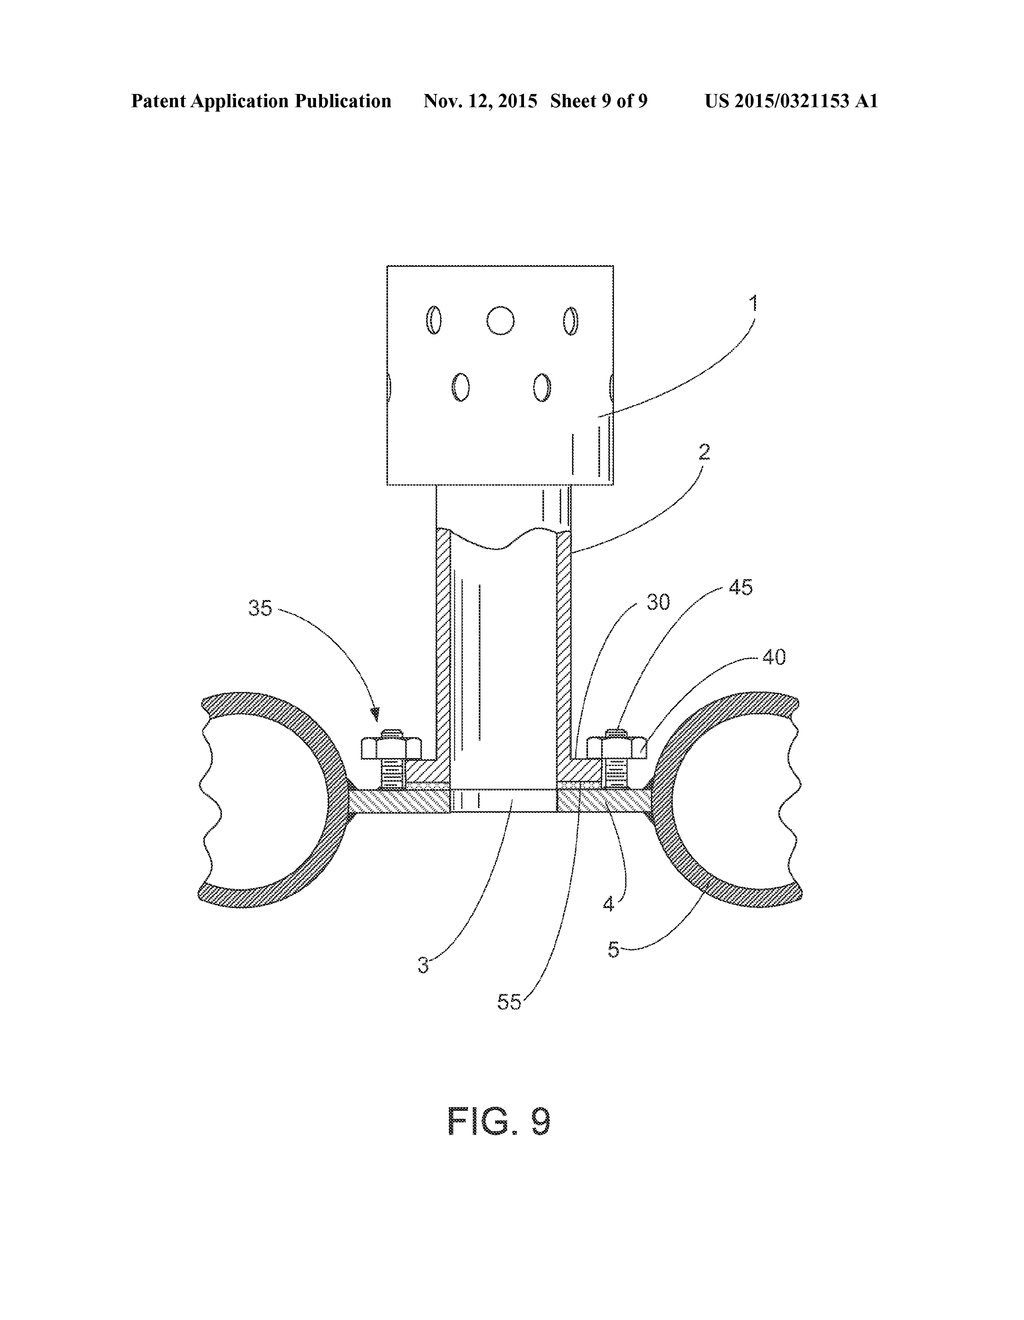 20150321153_10 fluidizing nozzle or bubble cap assembly for air distribution grid